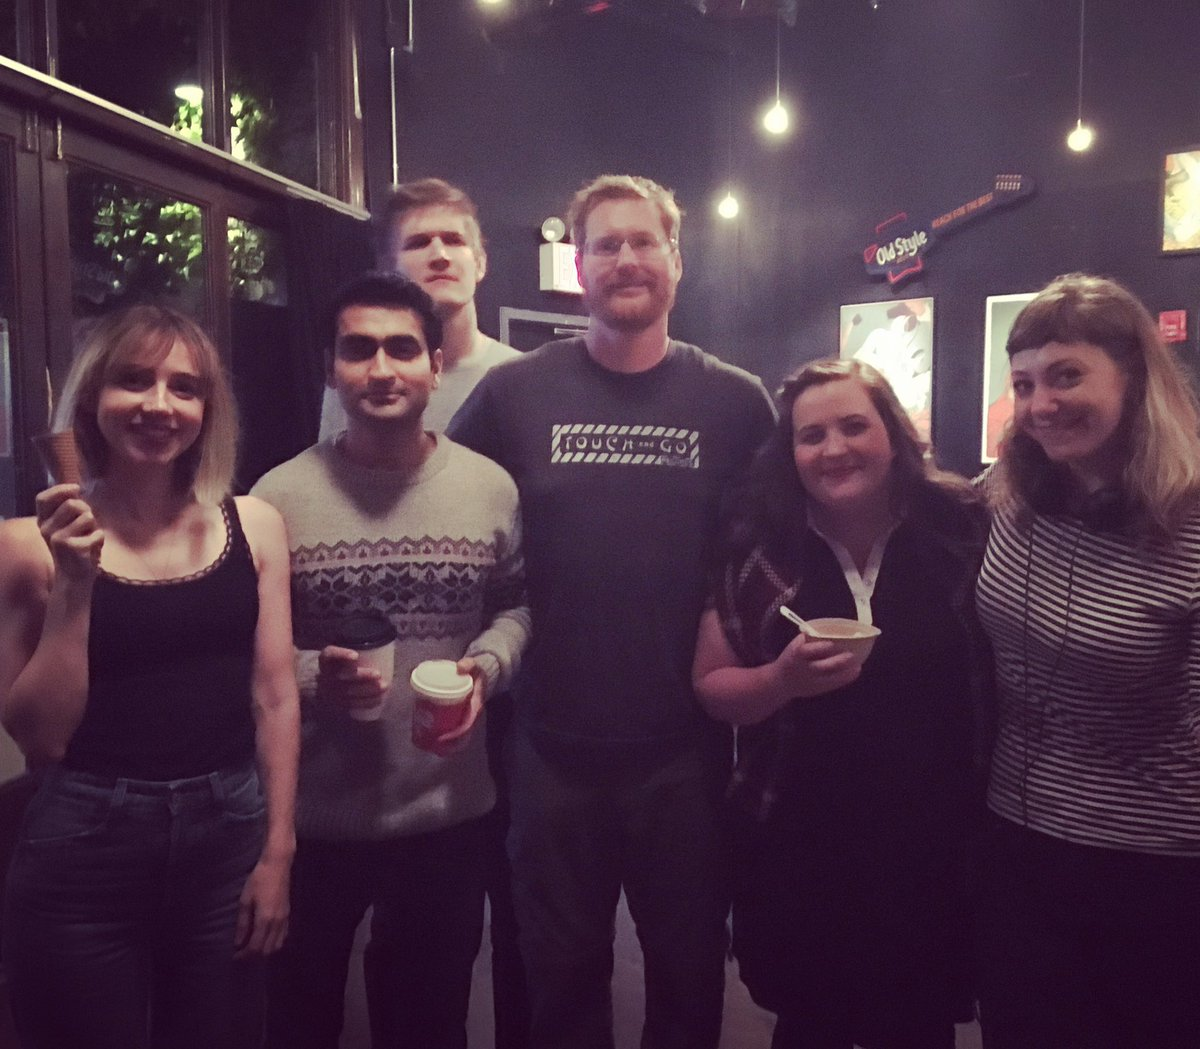 Here's all of us the night Kumail and Emily met, eating ice cream. @kumailn #watchwiththeacademy